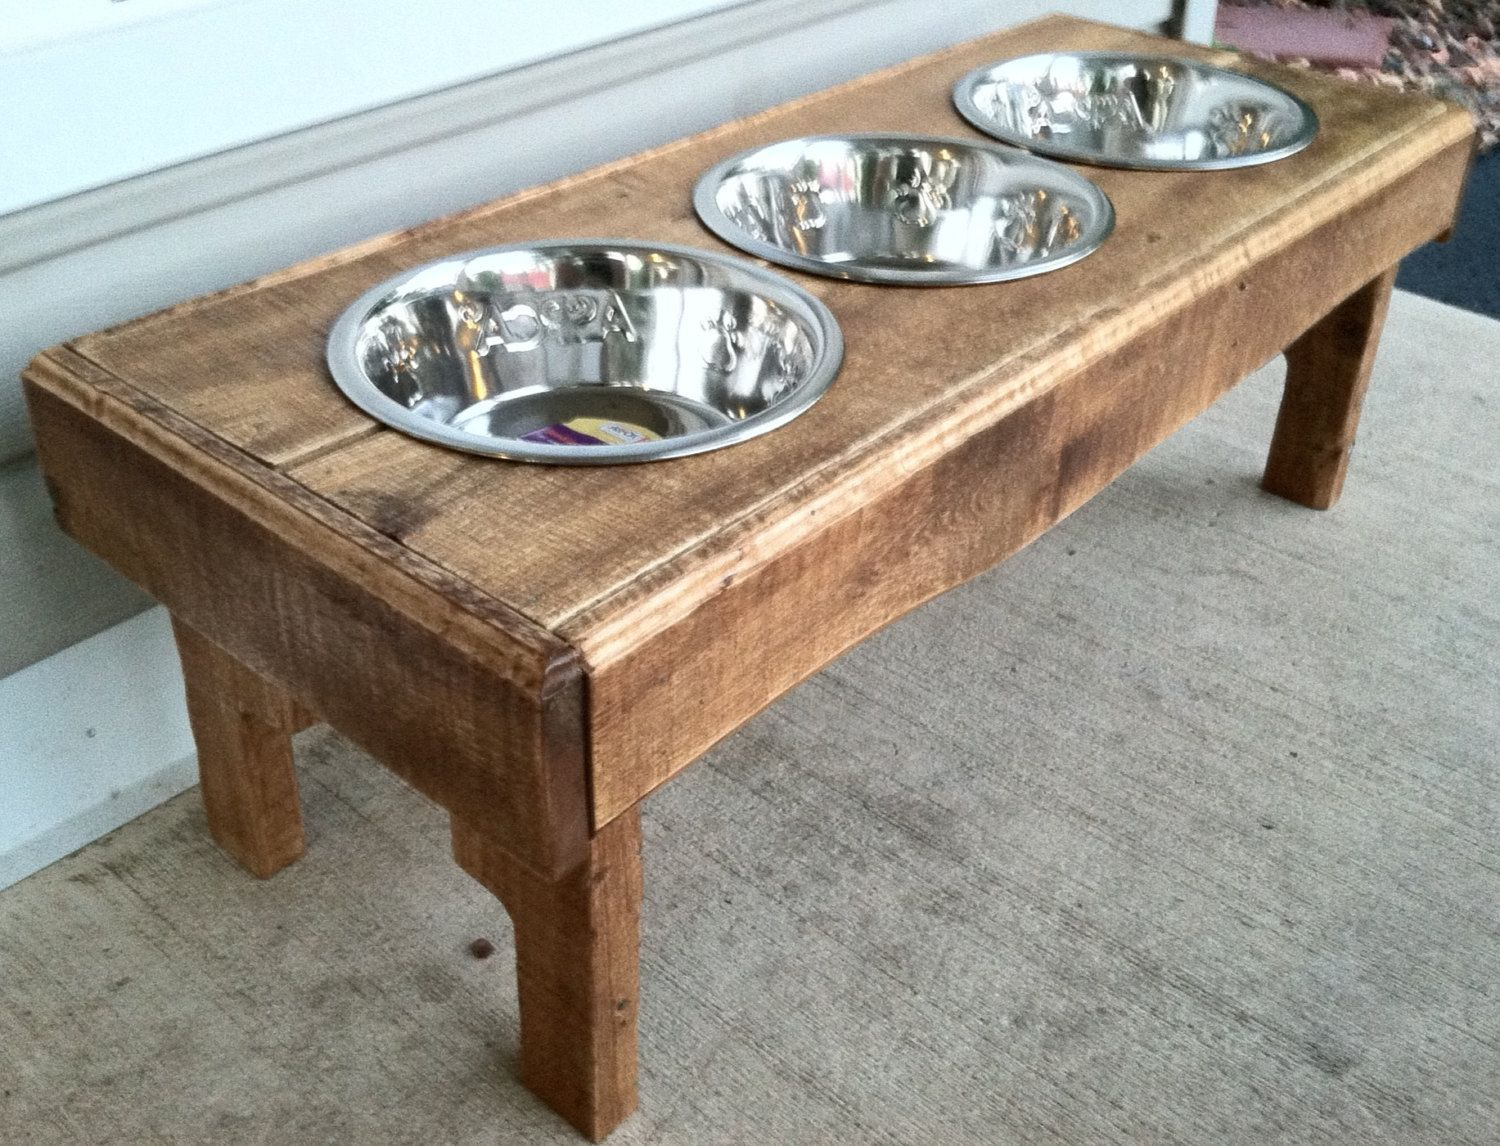 Reclaimed Rustic Pallet Furniture Dog Bowl Stand By Kustomwood, $5999